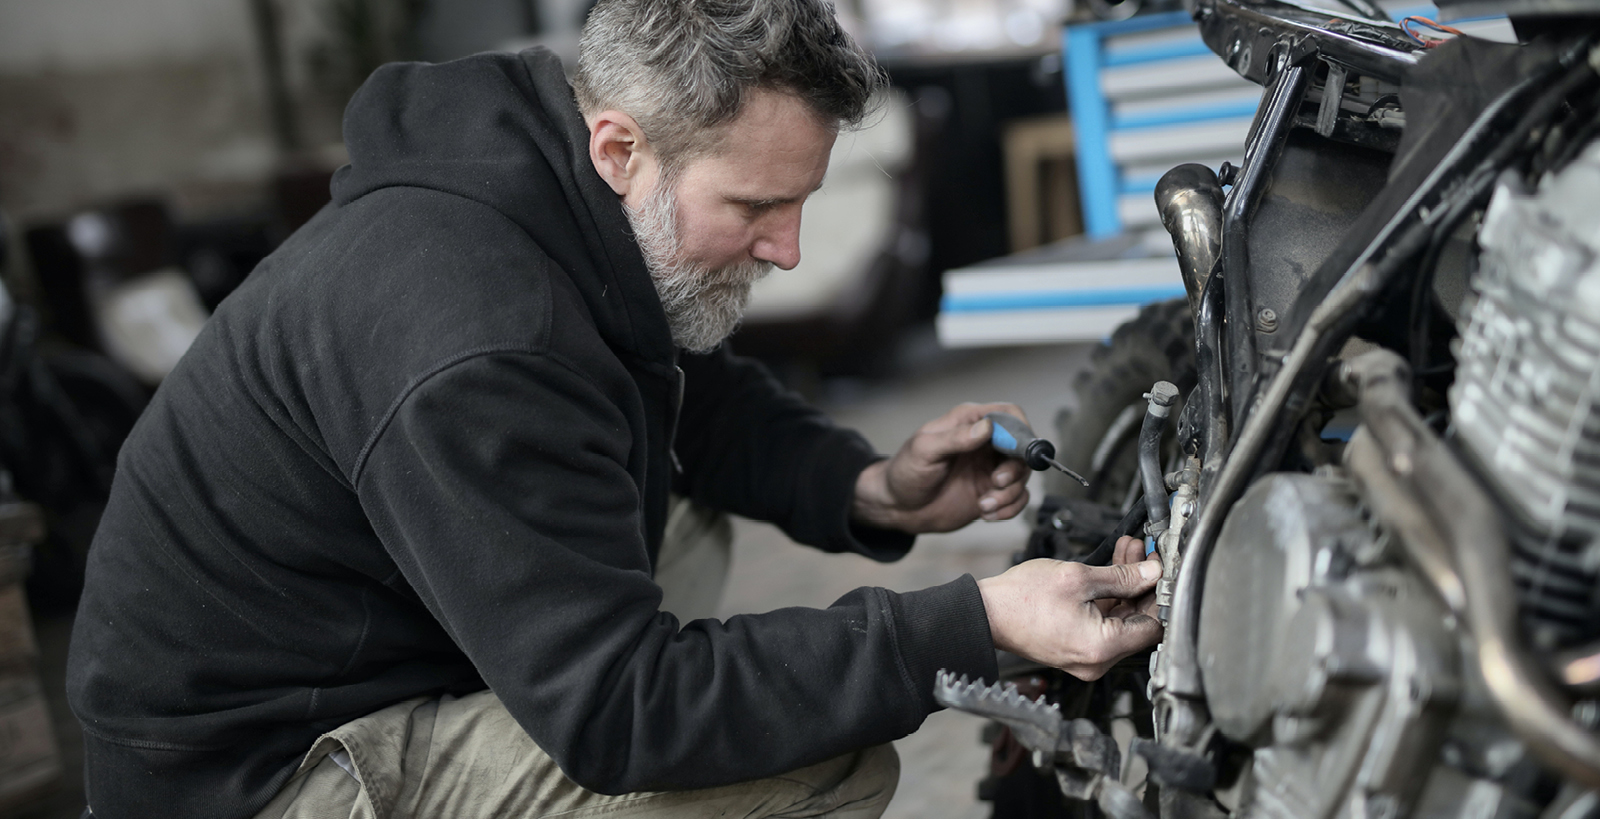 A man with a gray beard kneels to make repairs on a motorcycle